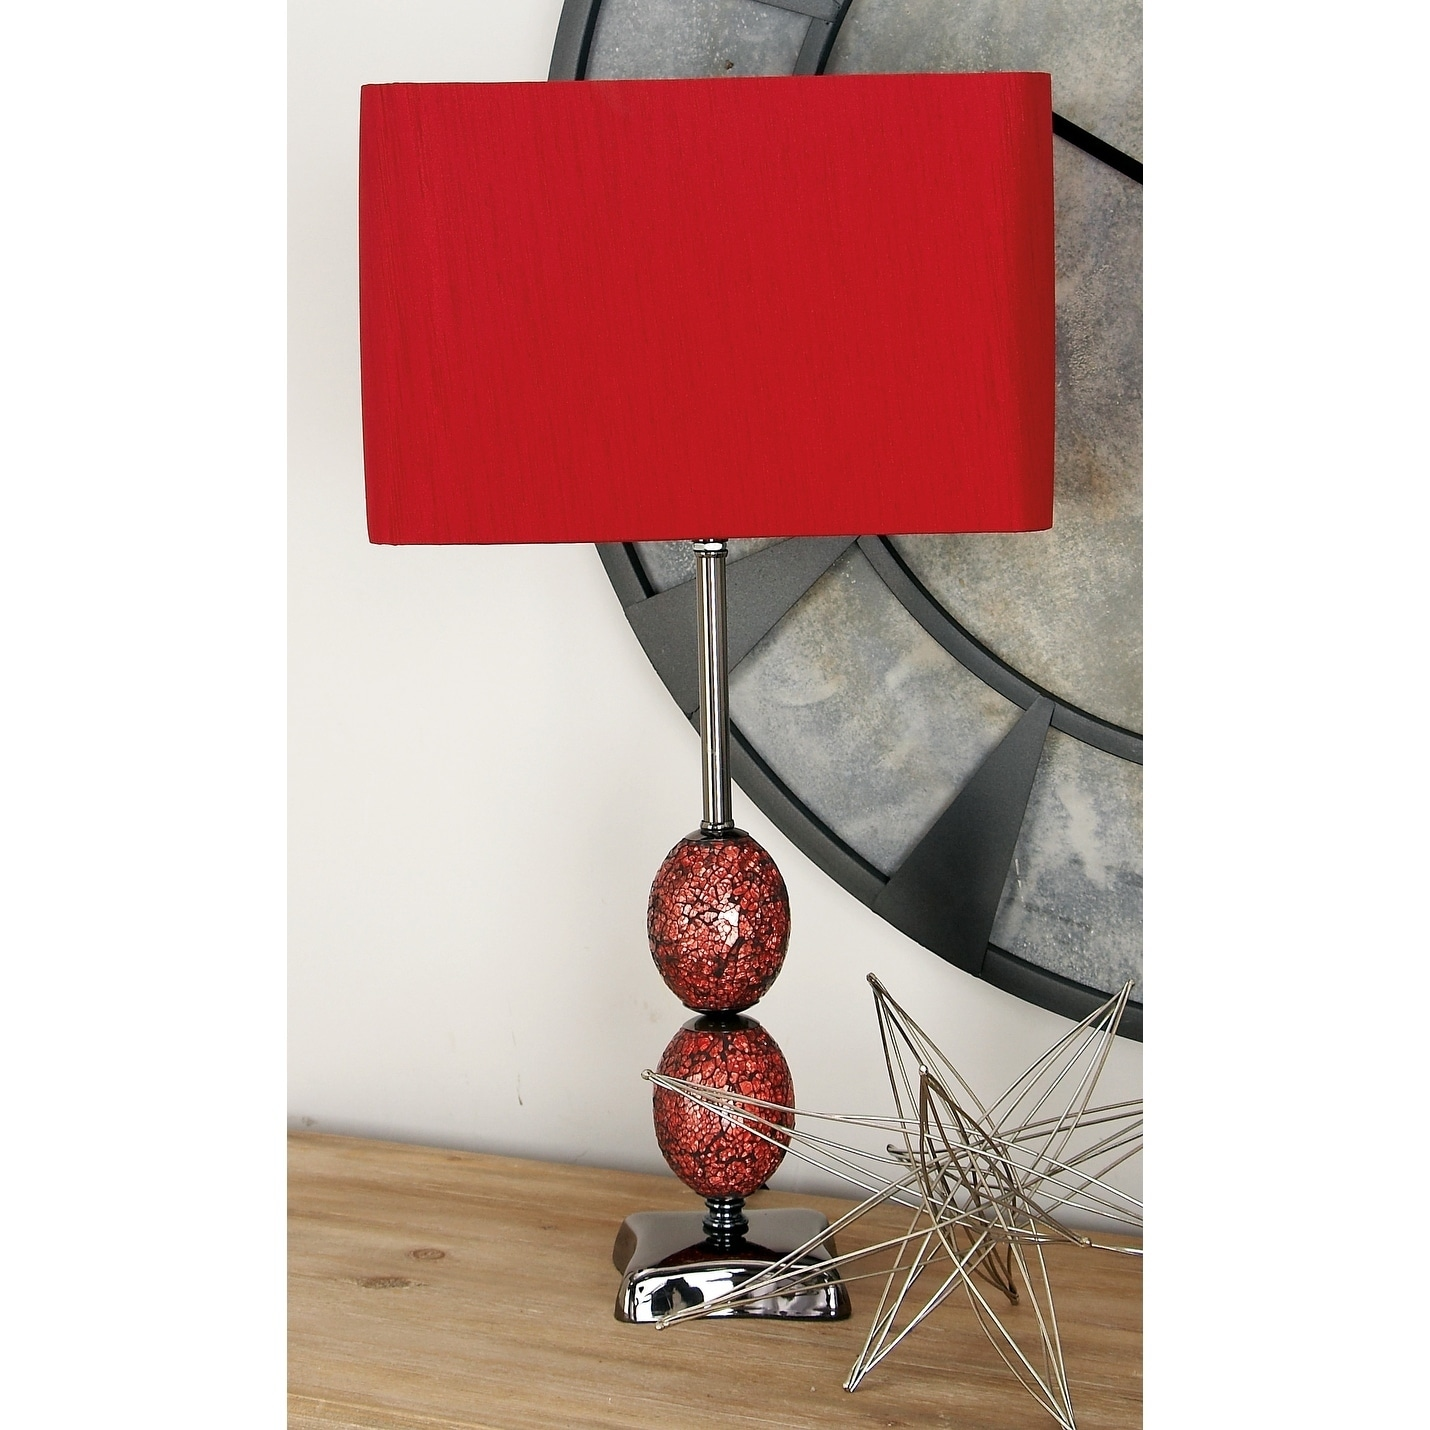 Studio 350 Metal Mosaic Table Lamp 24 inches high, Red (I...